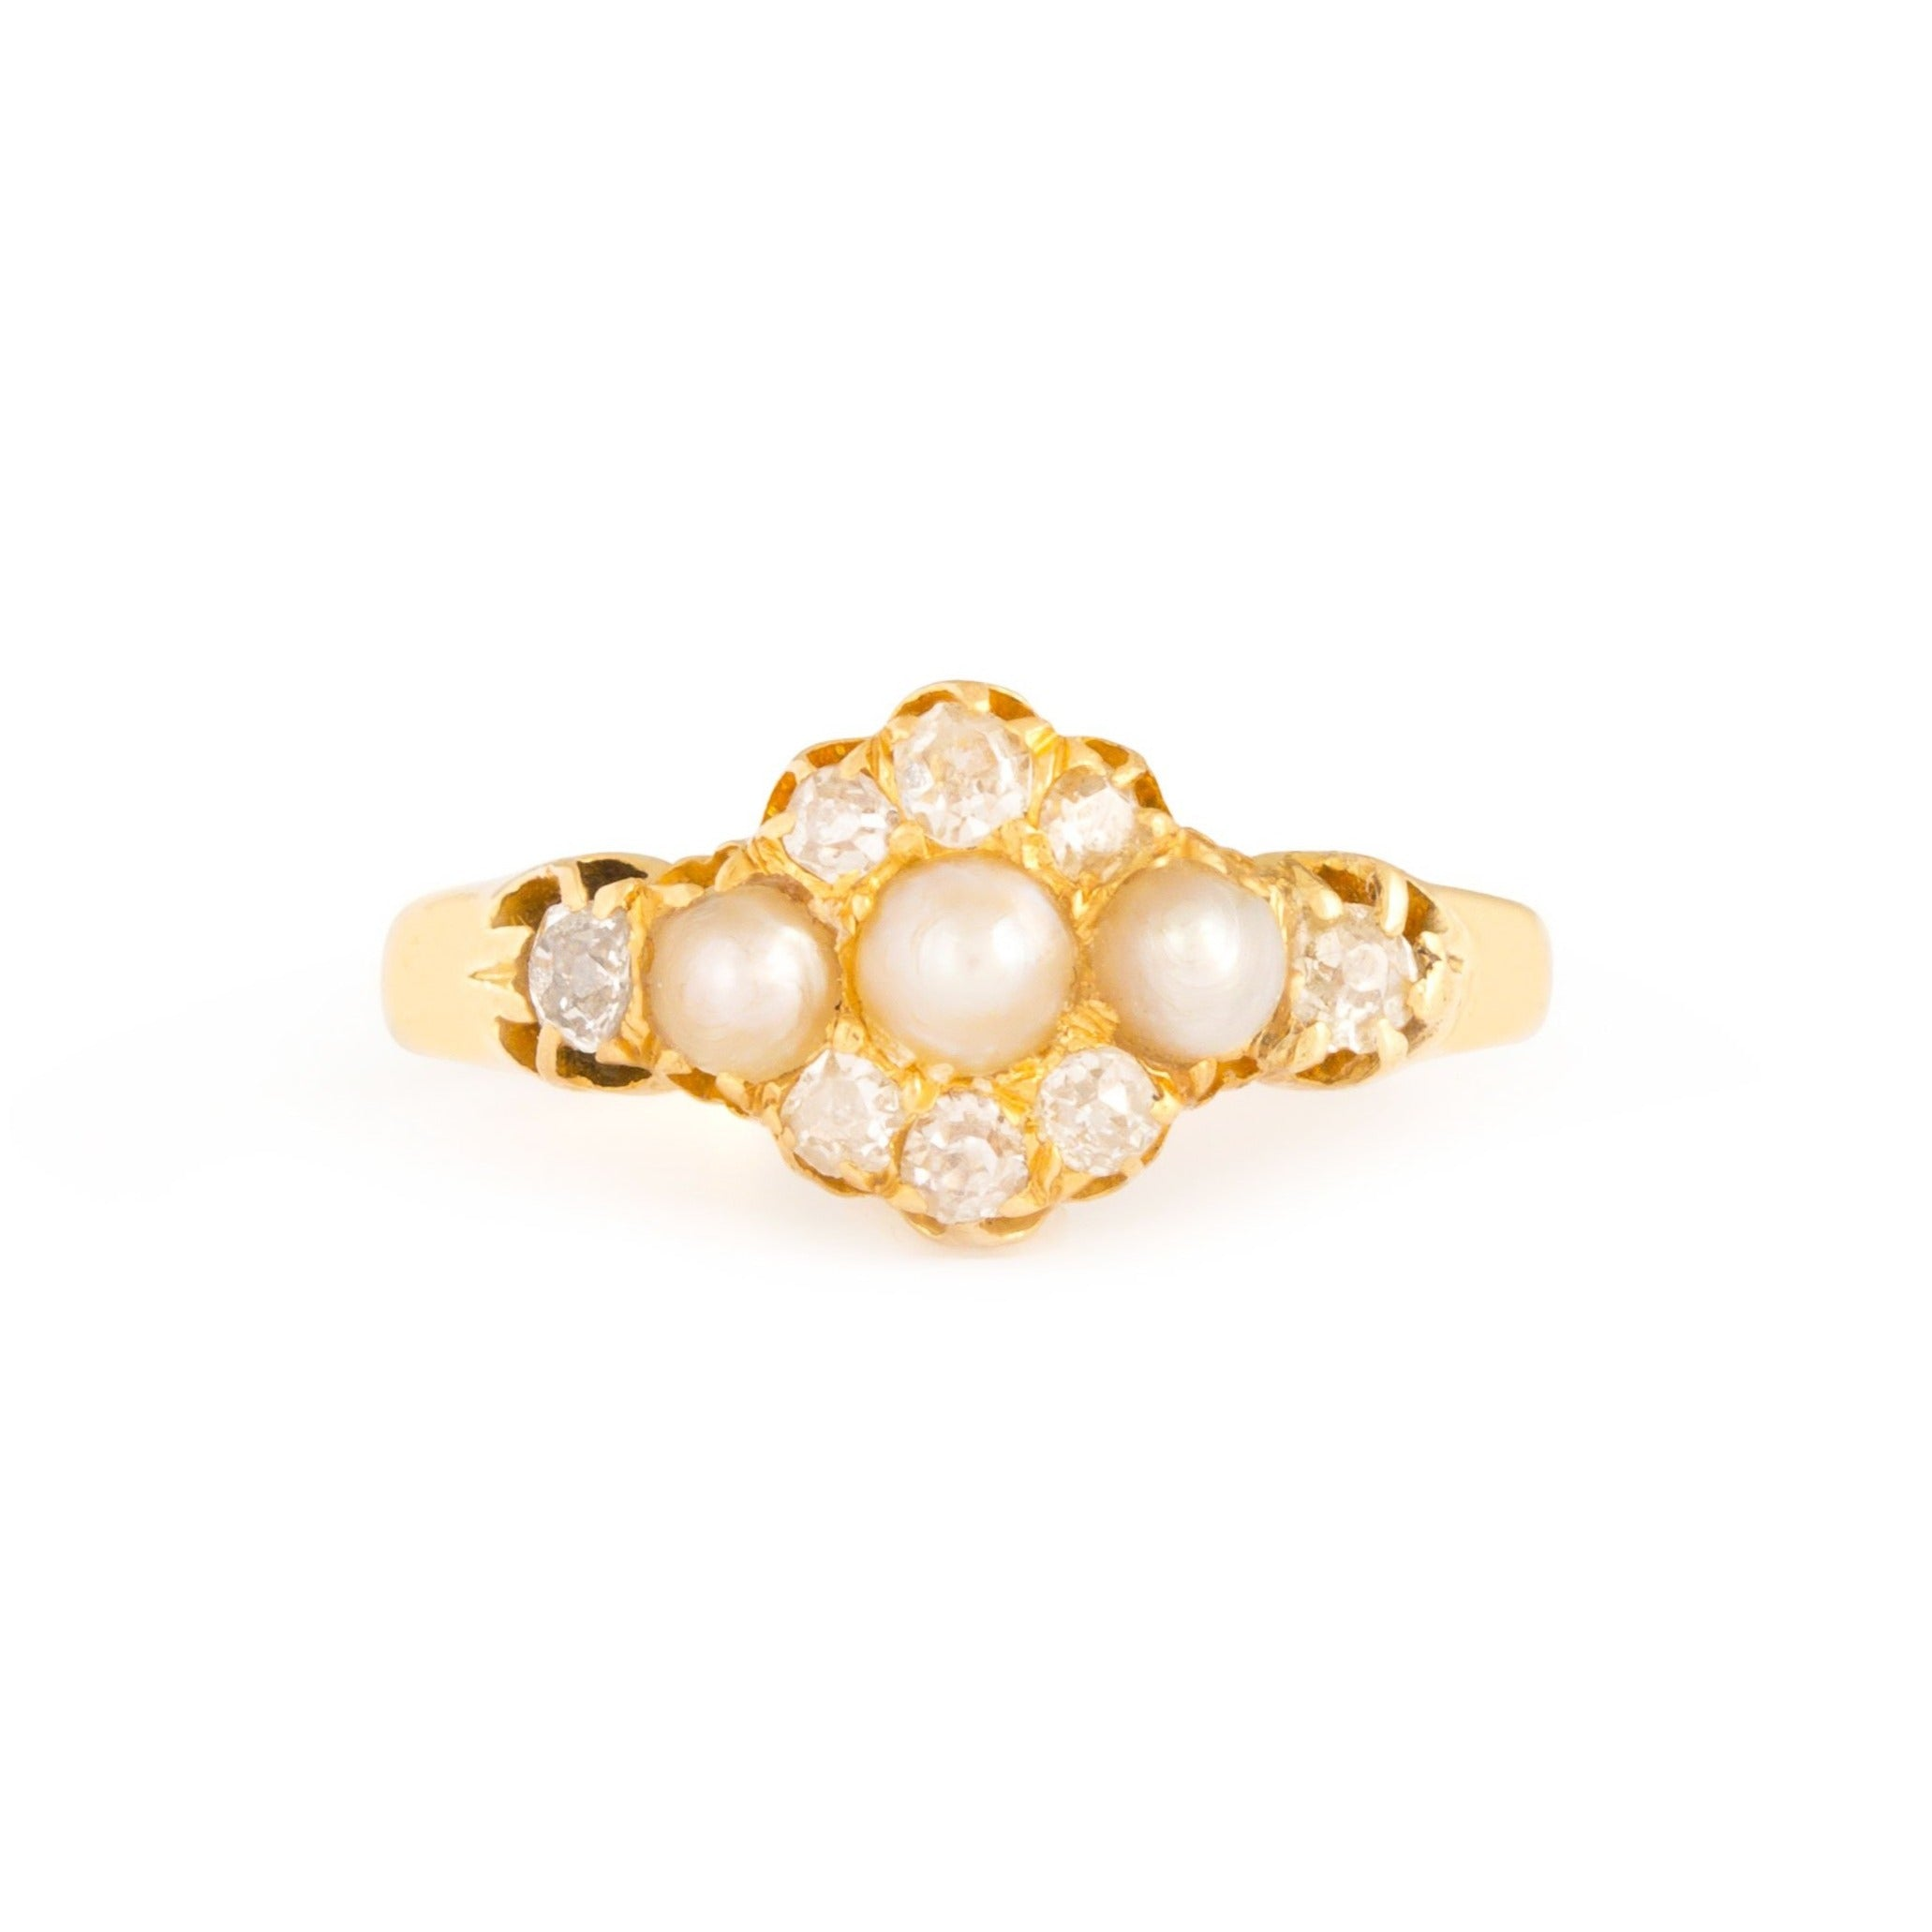 Victorian Pearl, Old Mine Cut Diamond, and 14k Gold Ring